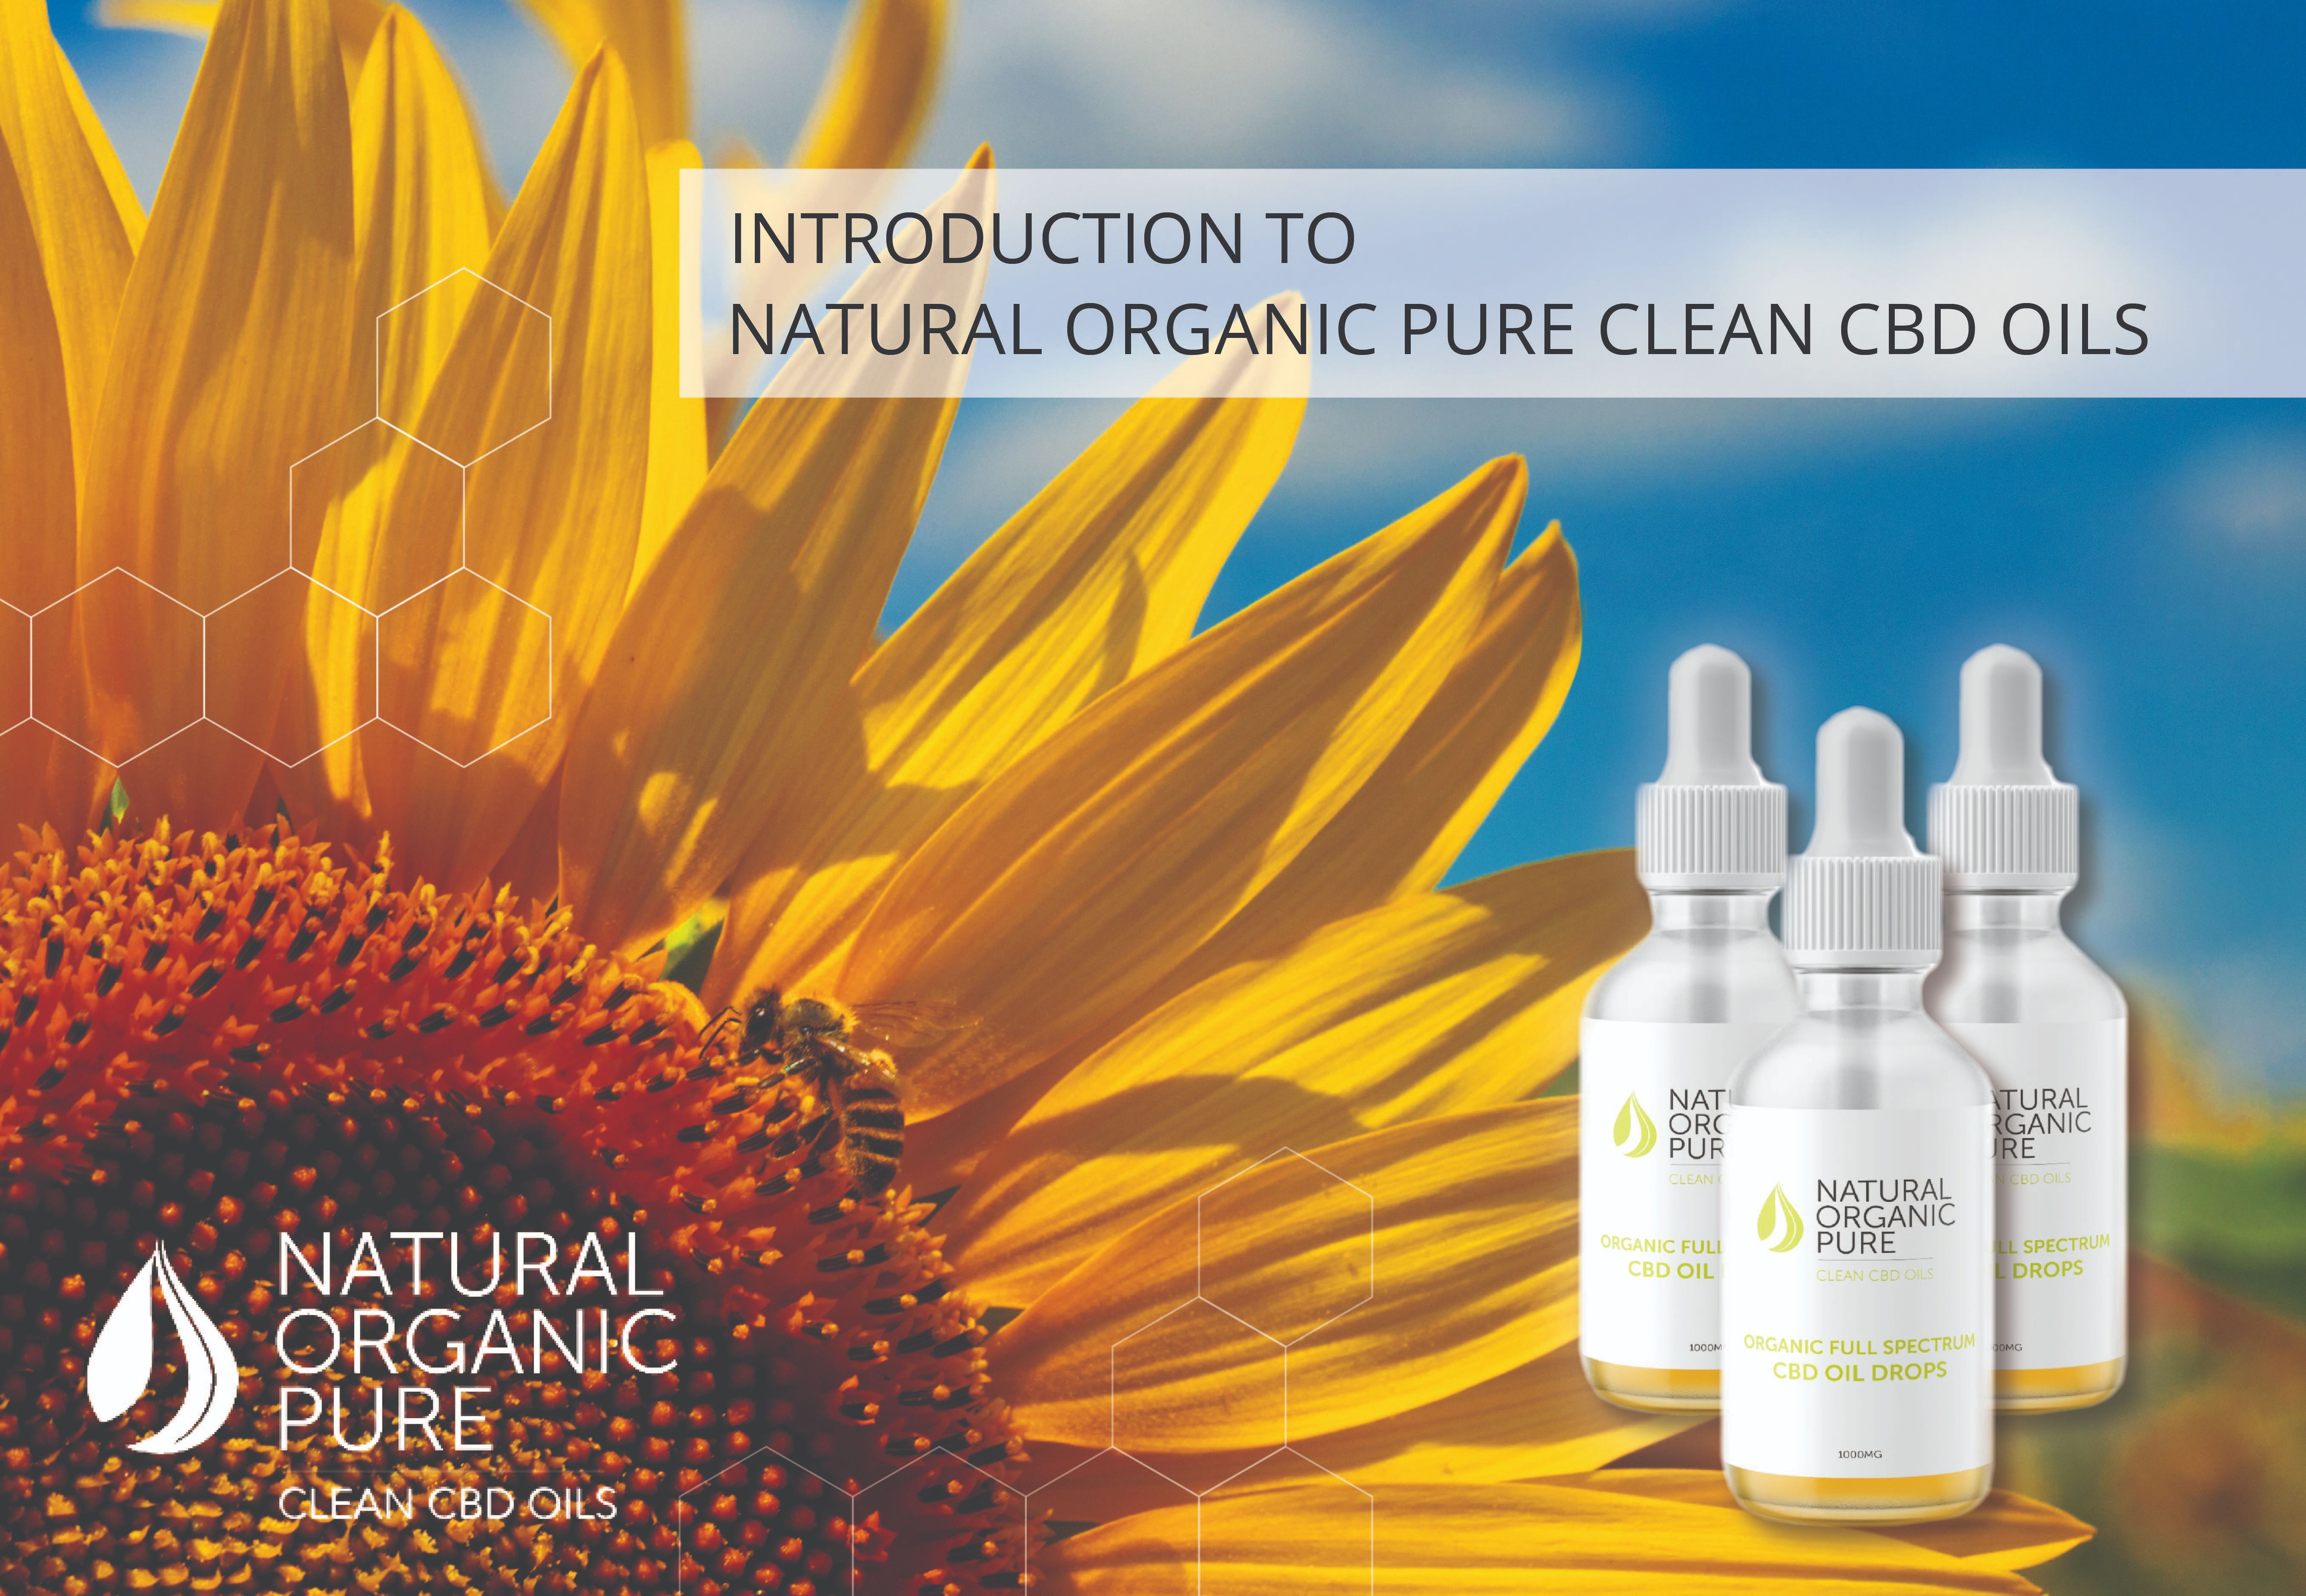 Introducing Natural Organic Pure Clean CBD Oils | Cannabidiol products | CBD Oil tinctures